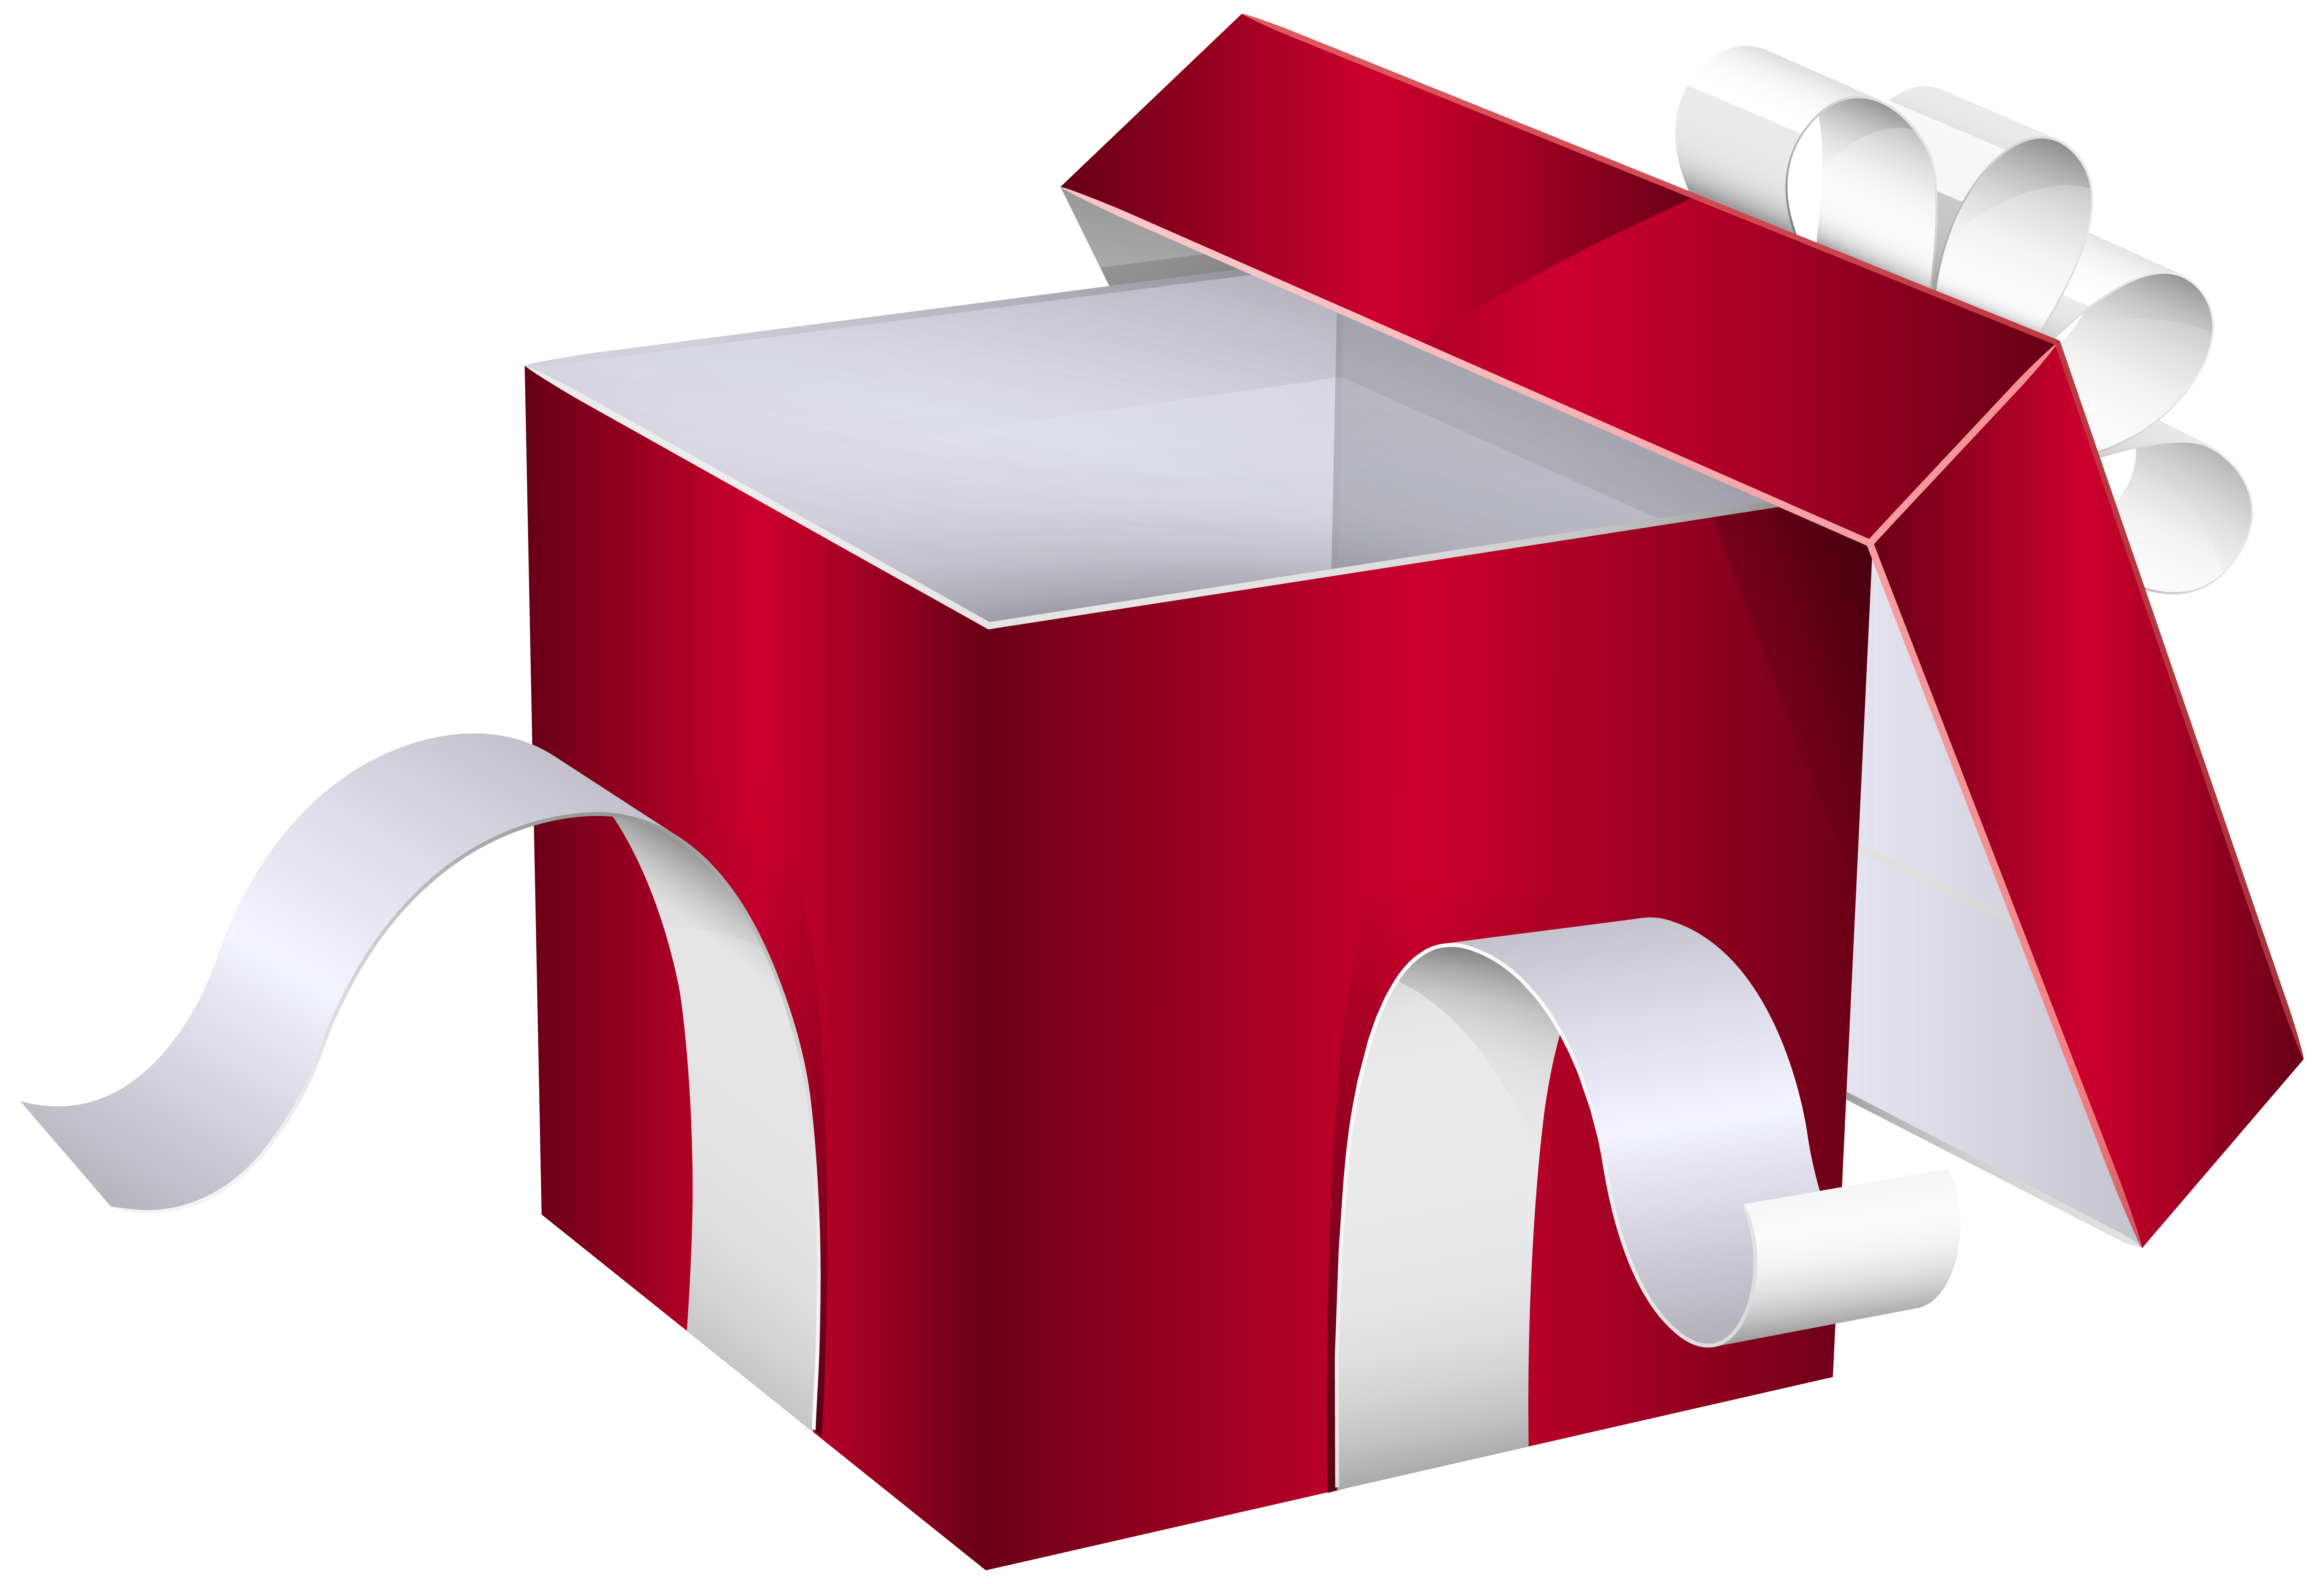 Open Red Gift Box PNG Clipart Image.